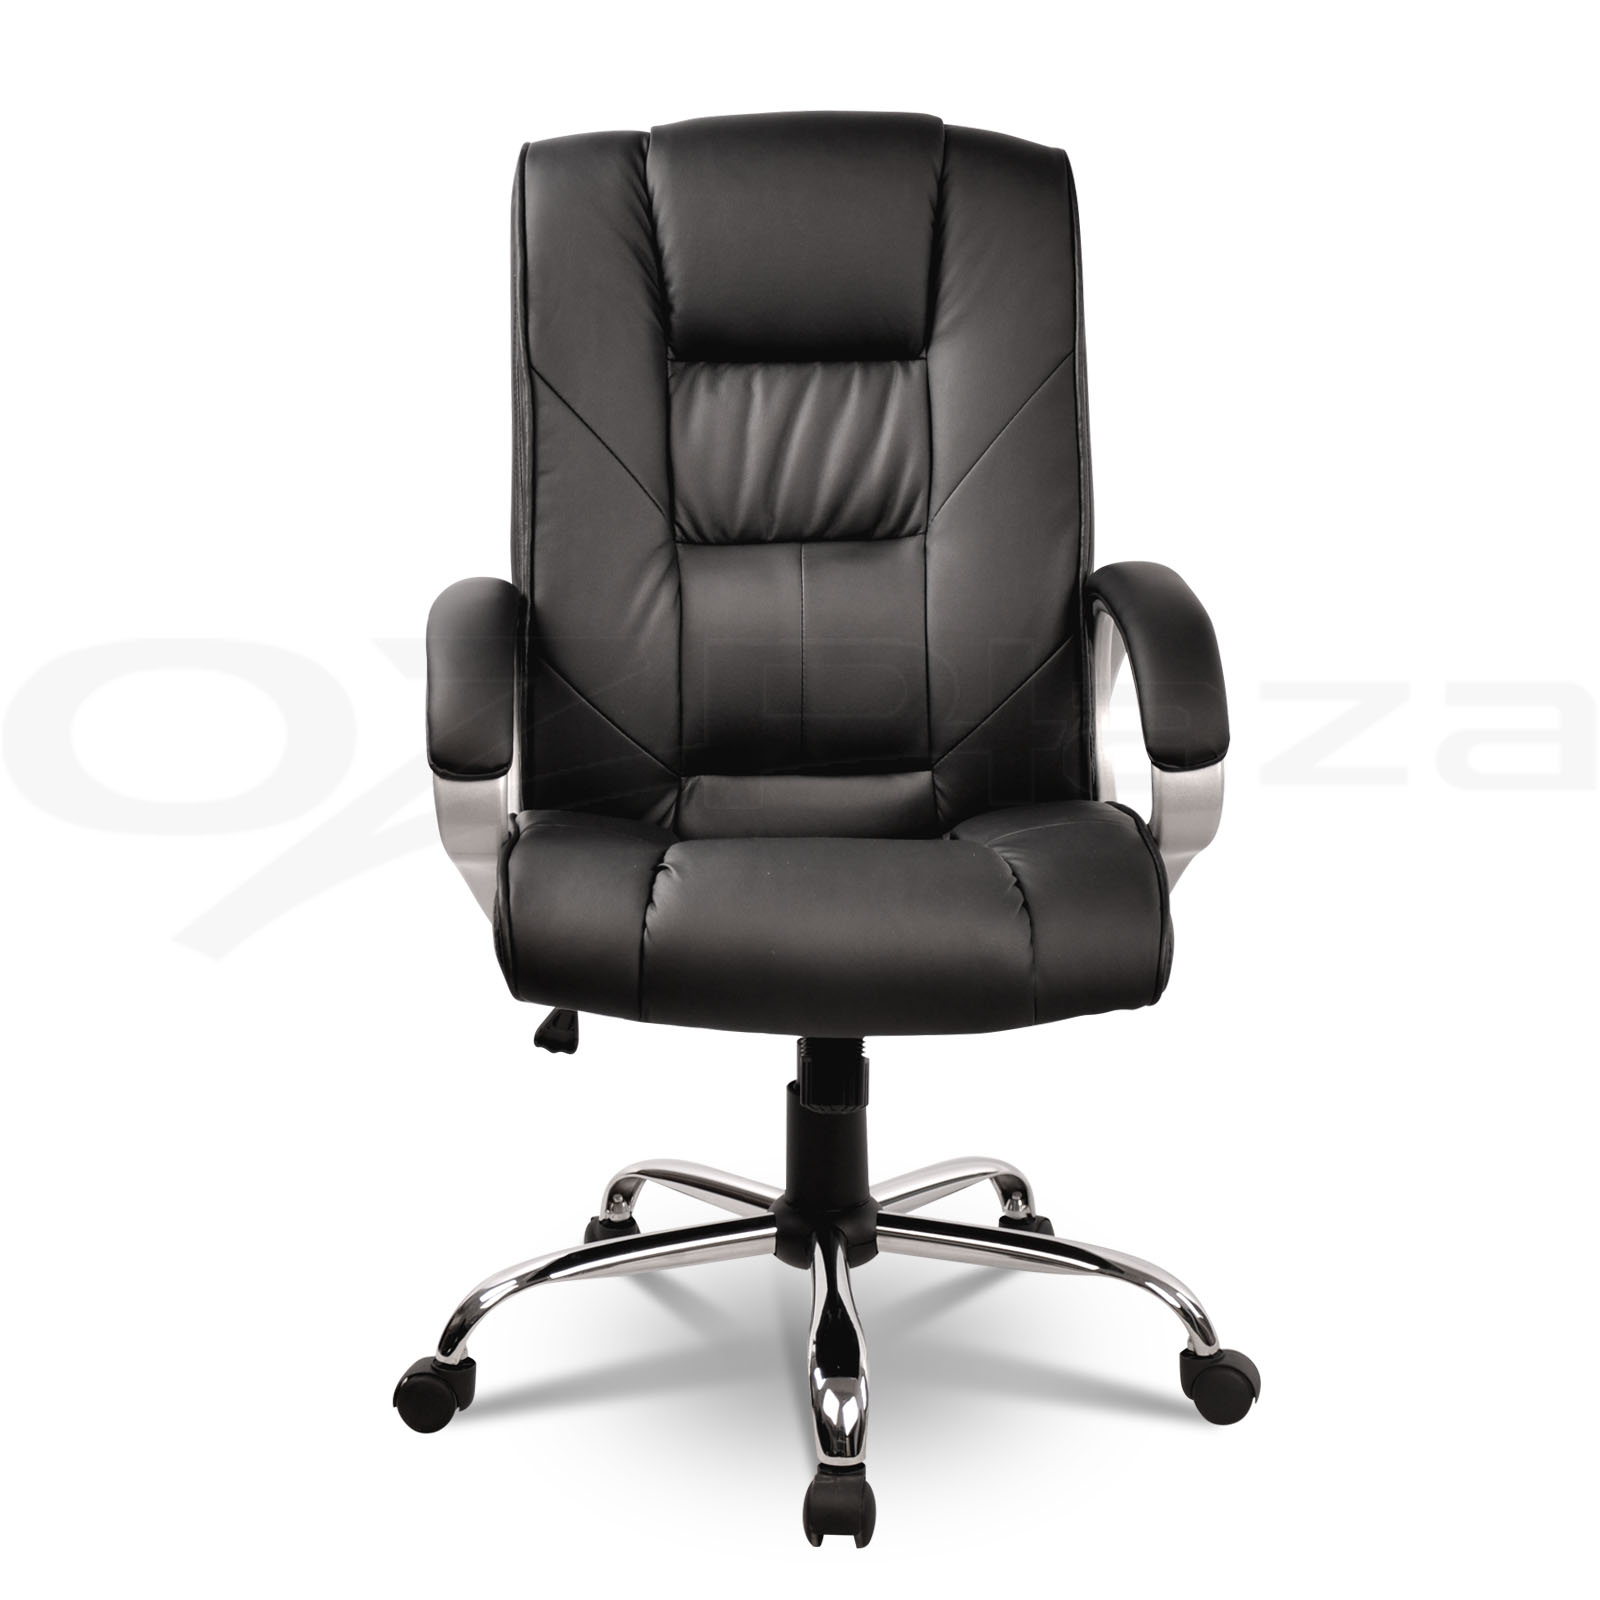 New-Executive-Premium-PU-Faux-Leather-Office-Computer-Chair-Black-82